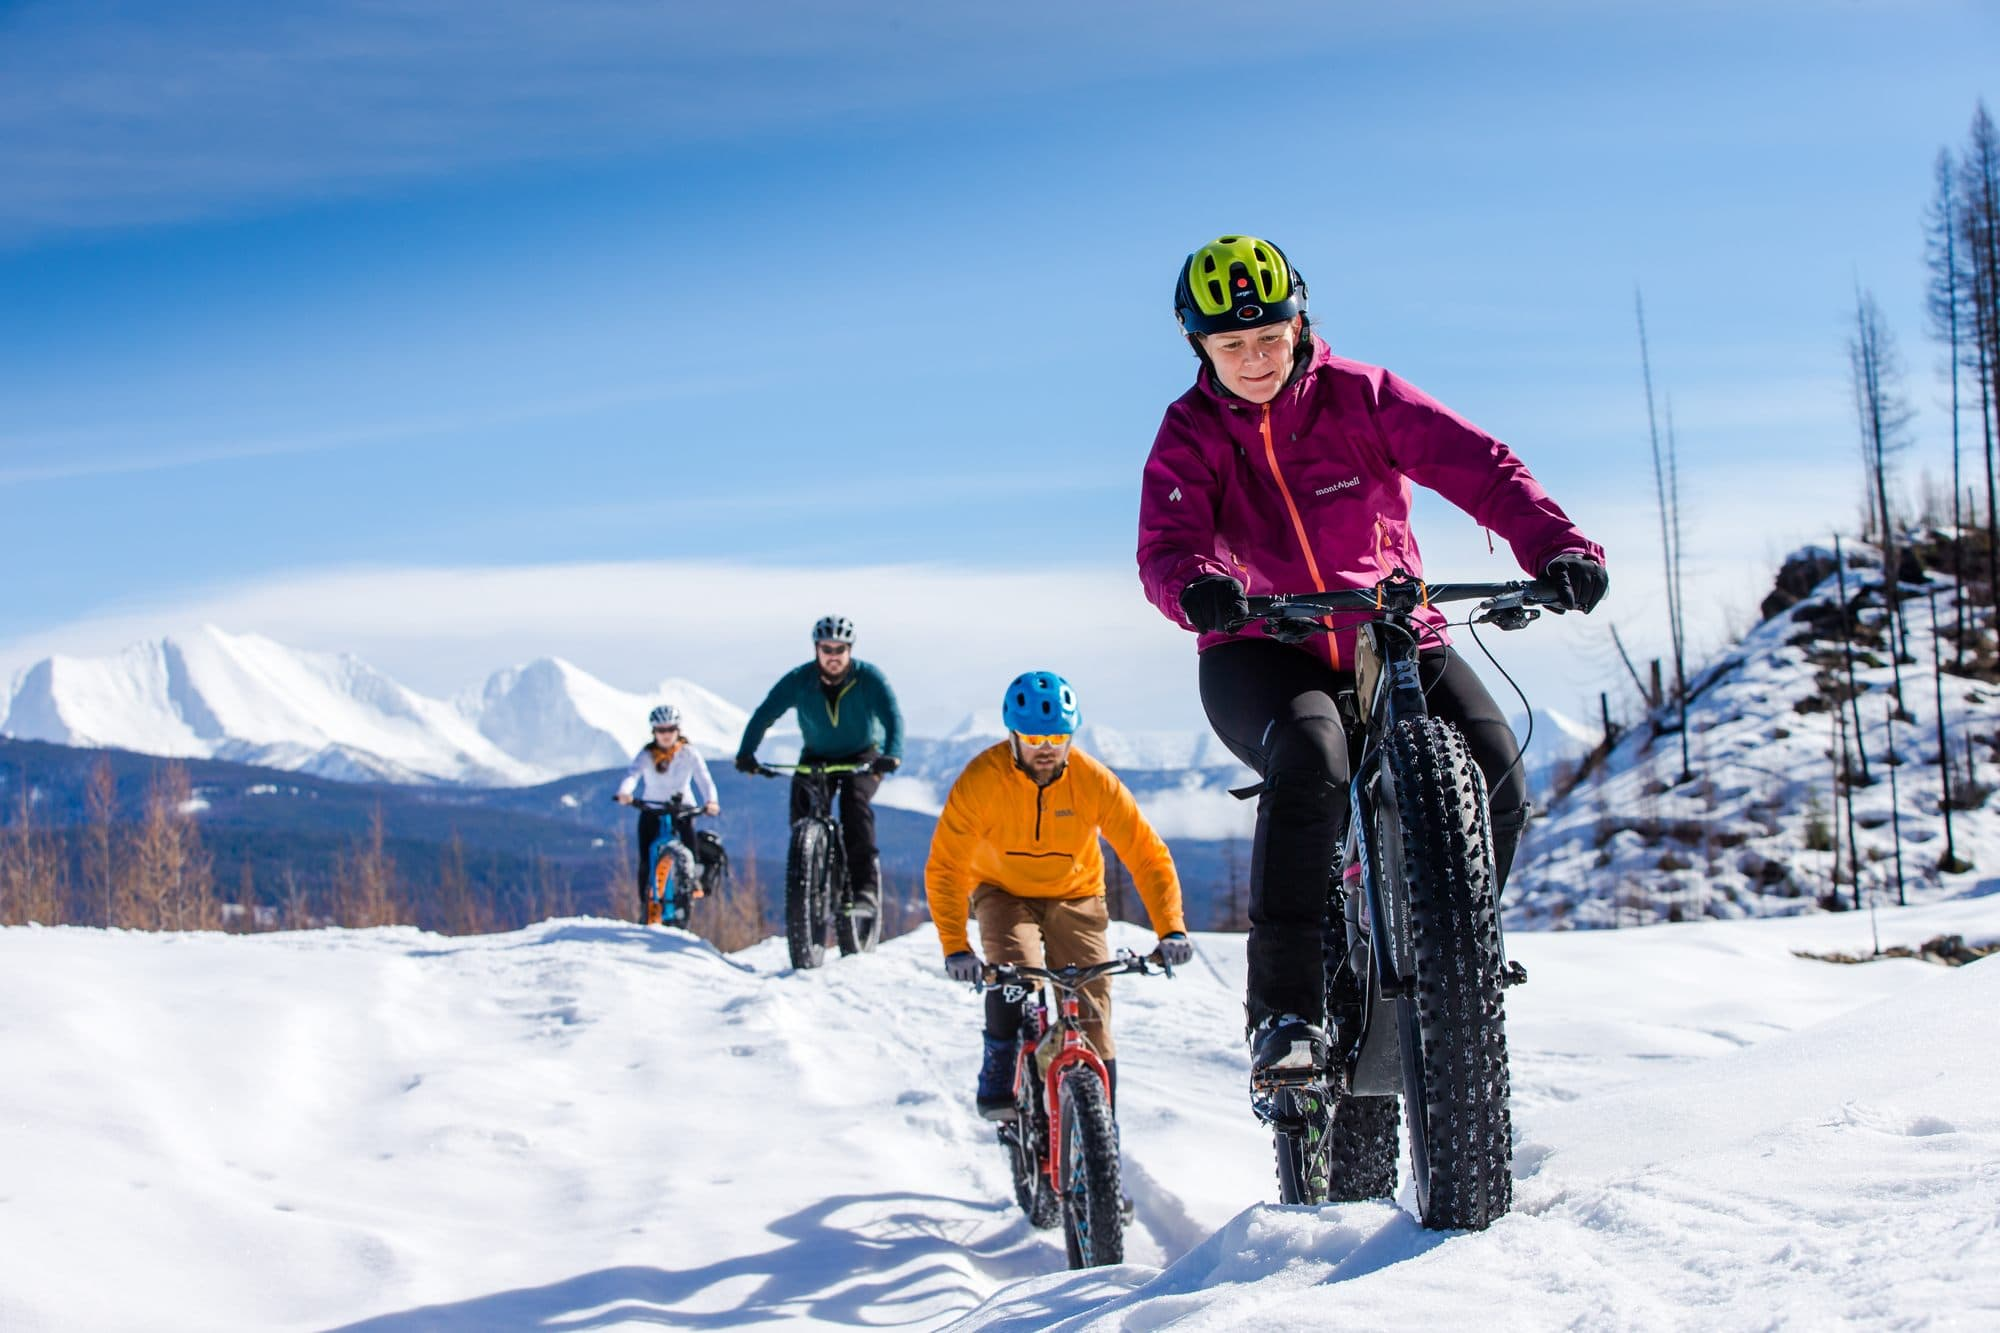 Winter fat biking in Montana // From hot springing to dog sledding to skijoring, plan an adventurous vacation to Montana in winter with these 8 outdoor winter activities.